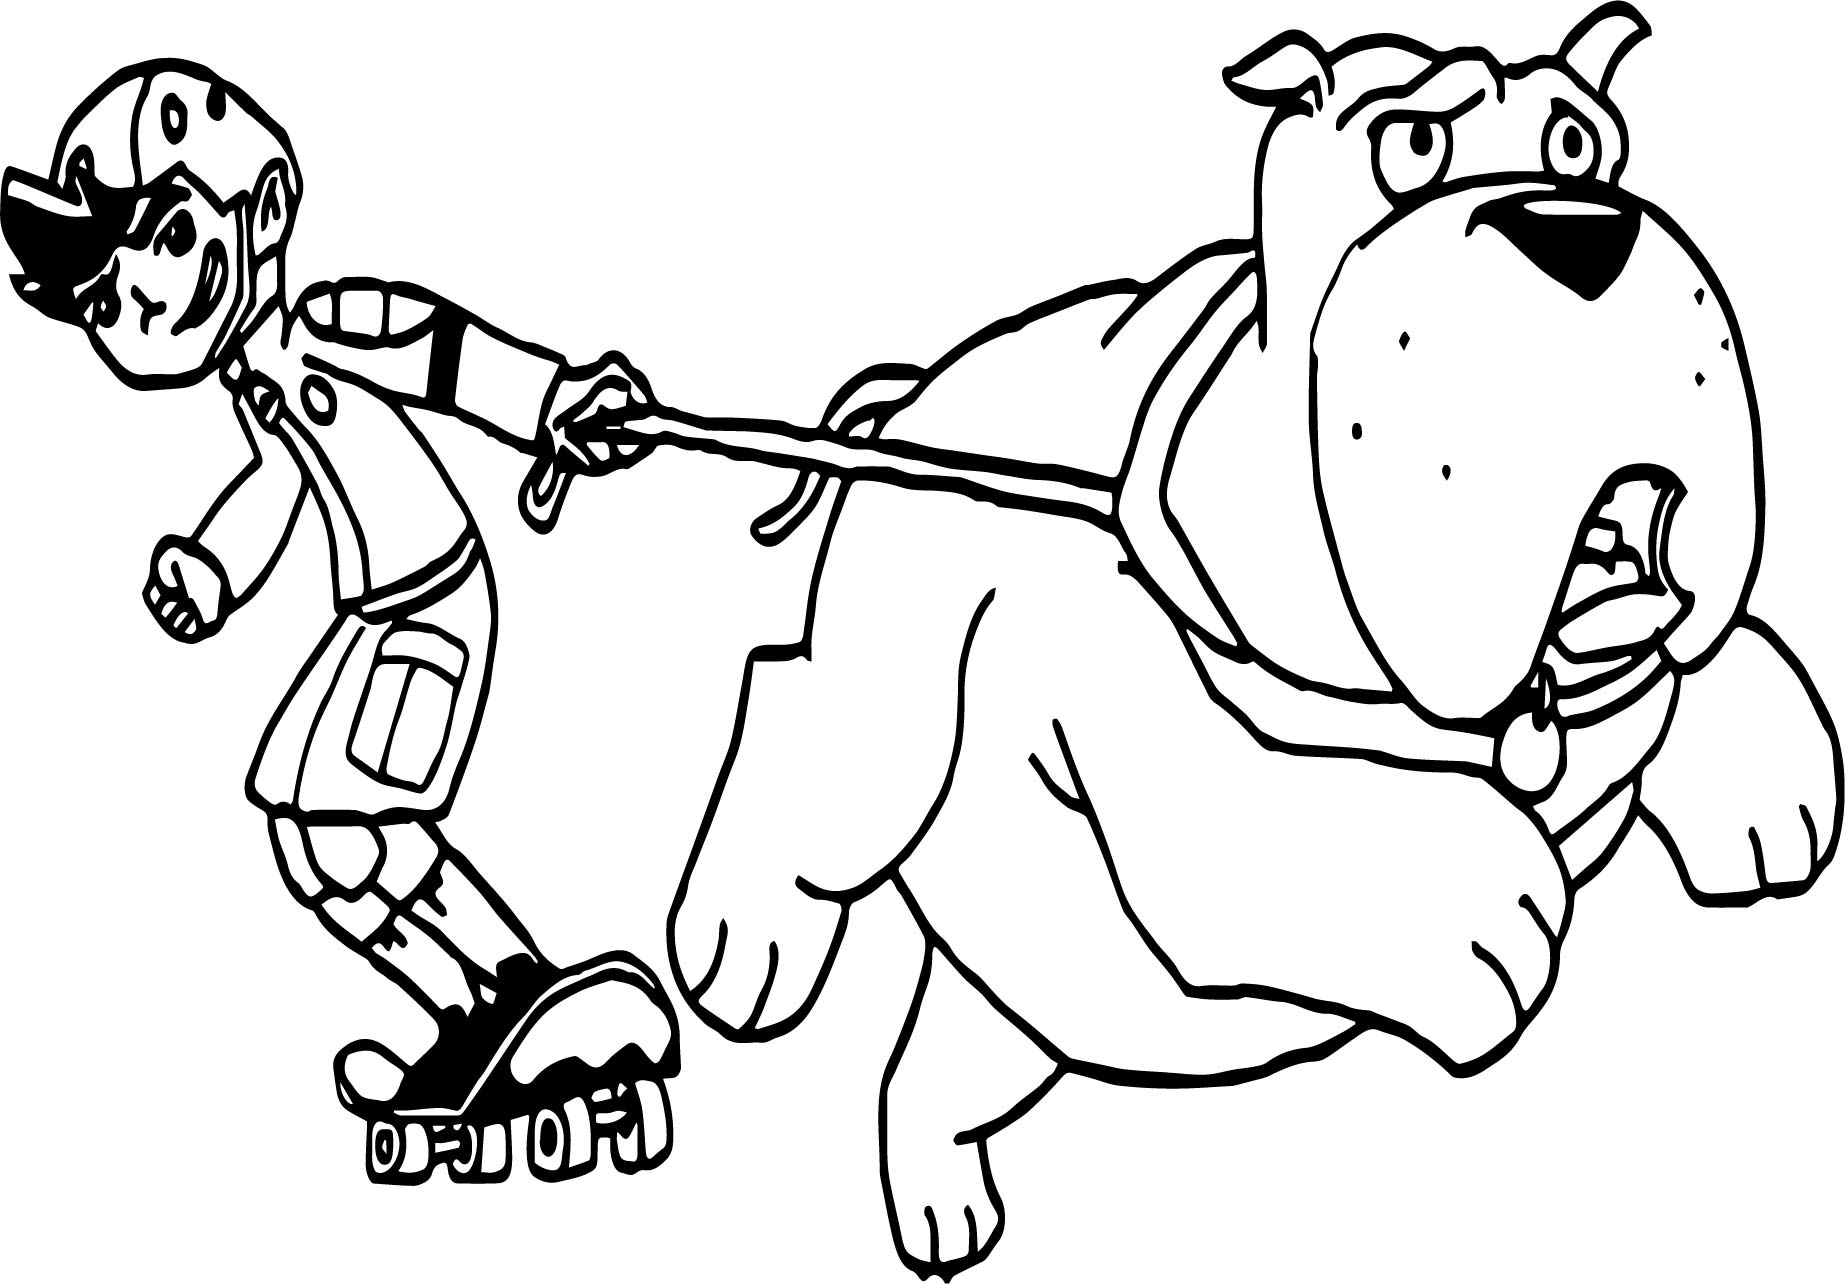 American Dragon Jake Long Skate With Dog Coloring Page